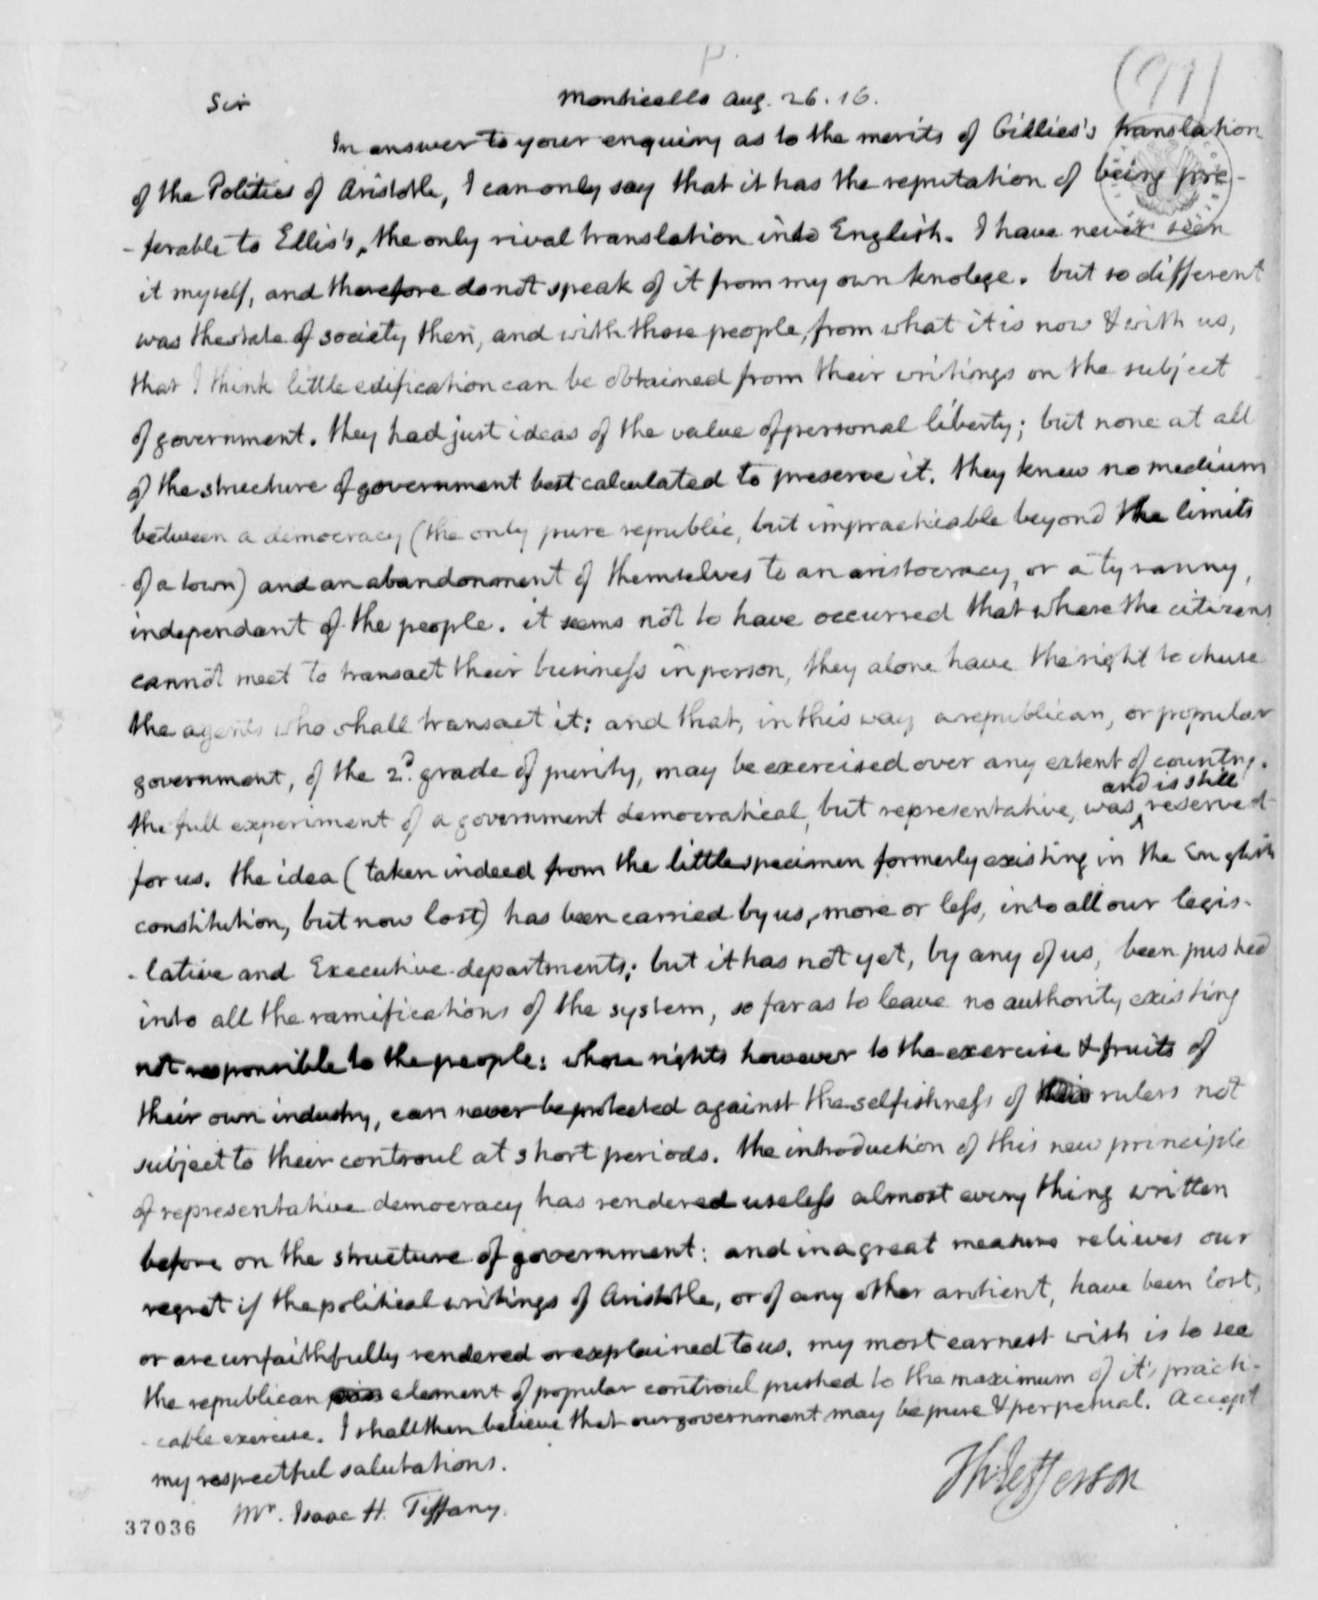 Thomas Jefferson to Isaac H. Tiffany, August 26, 1816